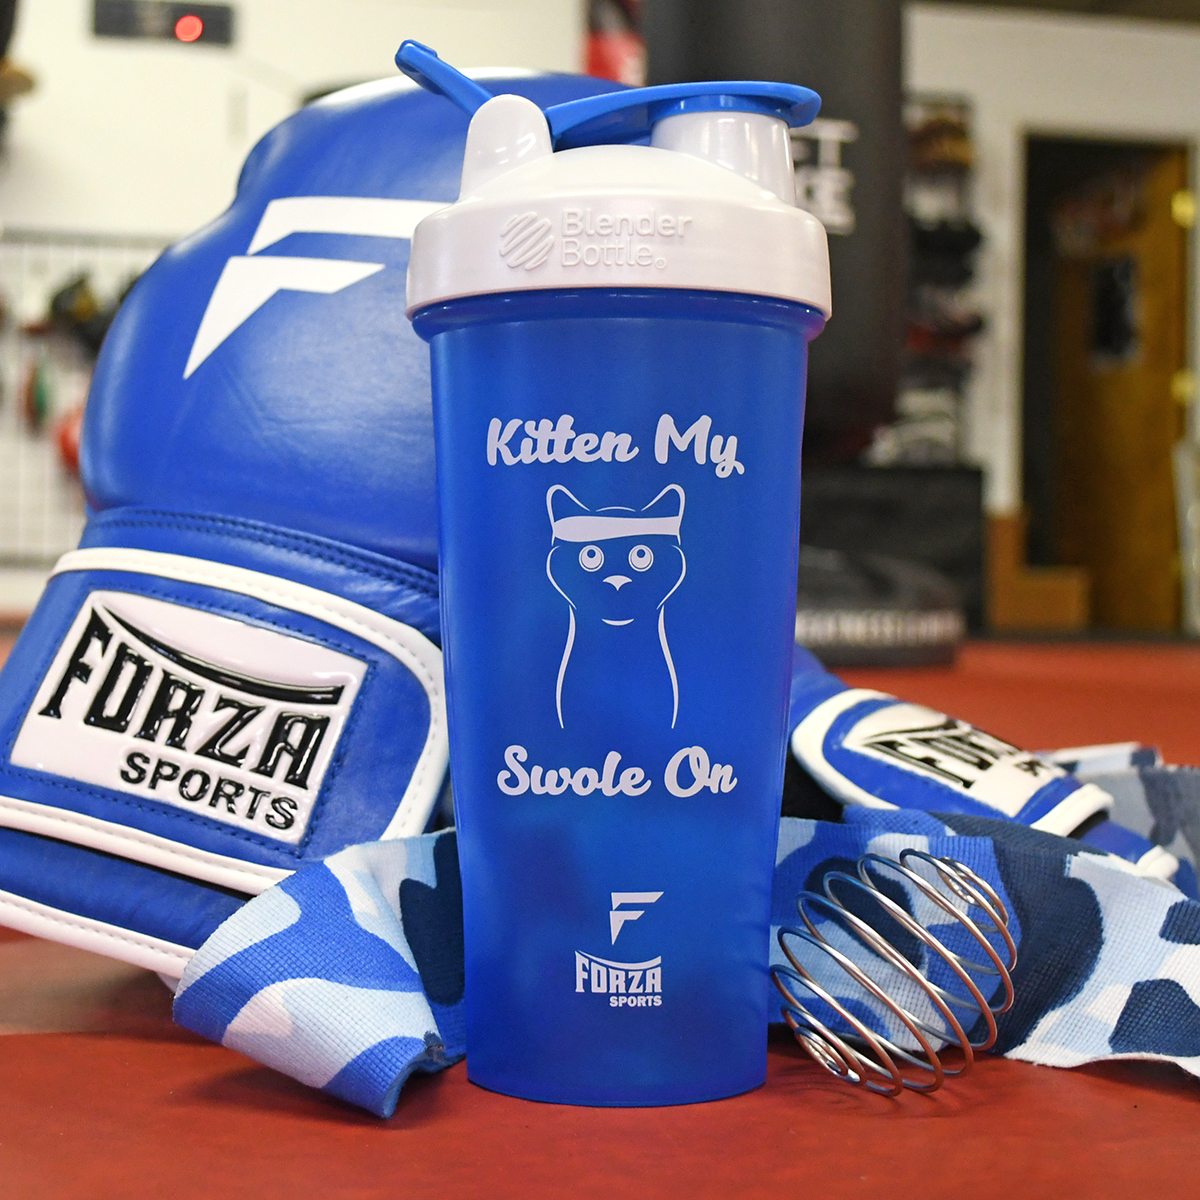 Blender-Bottle-x-Forza-Sports-Classic-28-oz-Shaker-Mixer-Cup-with-Loop-Top thumbnail 29